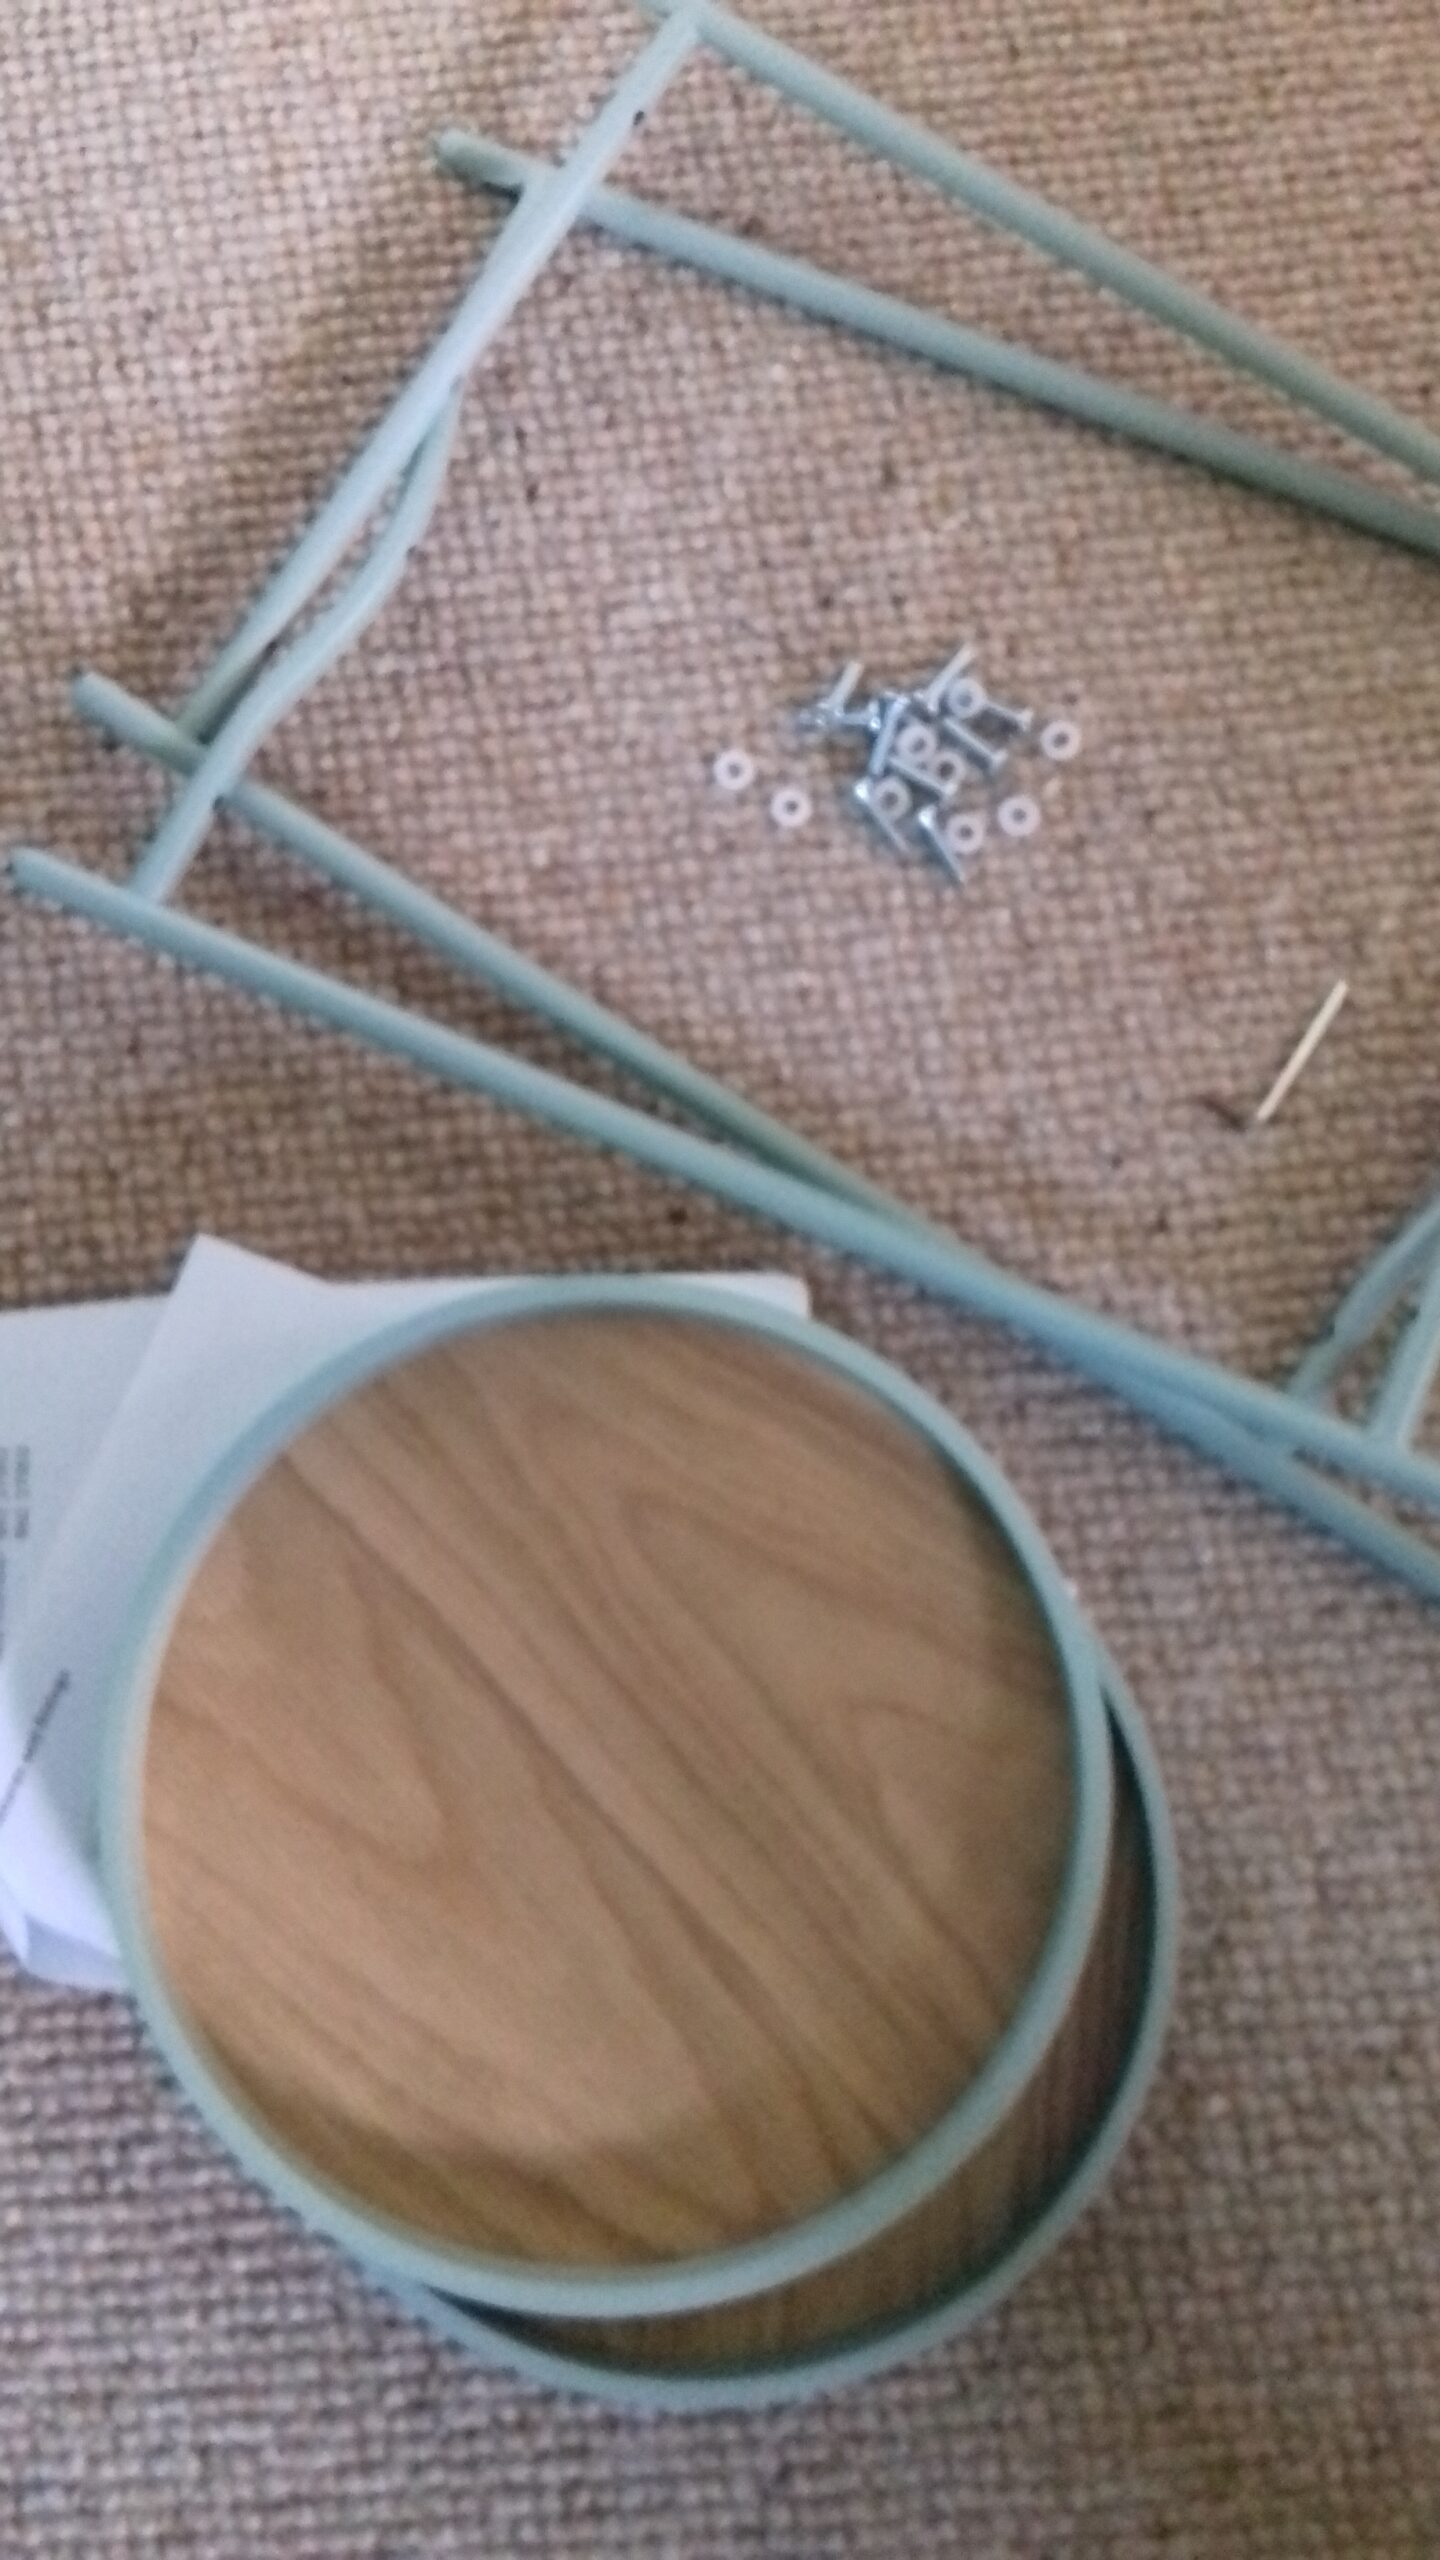 self-assembly parts of little side table